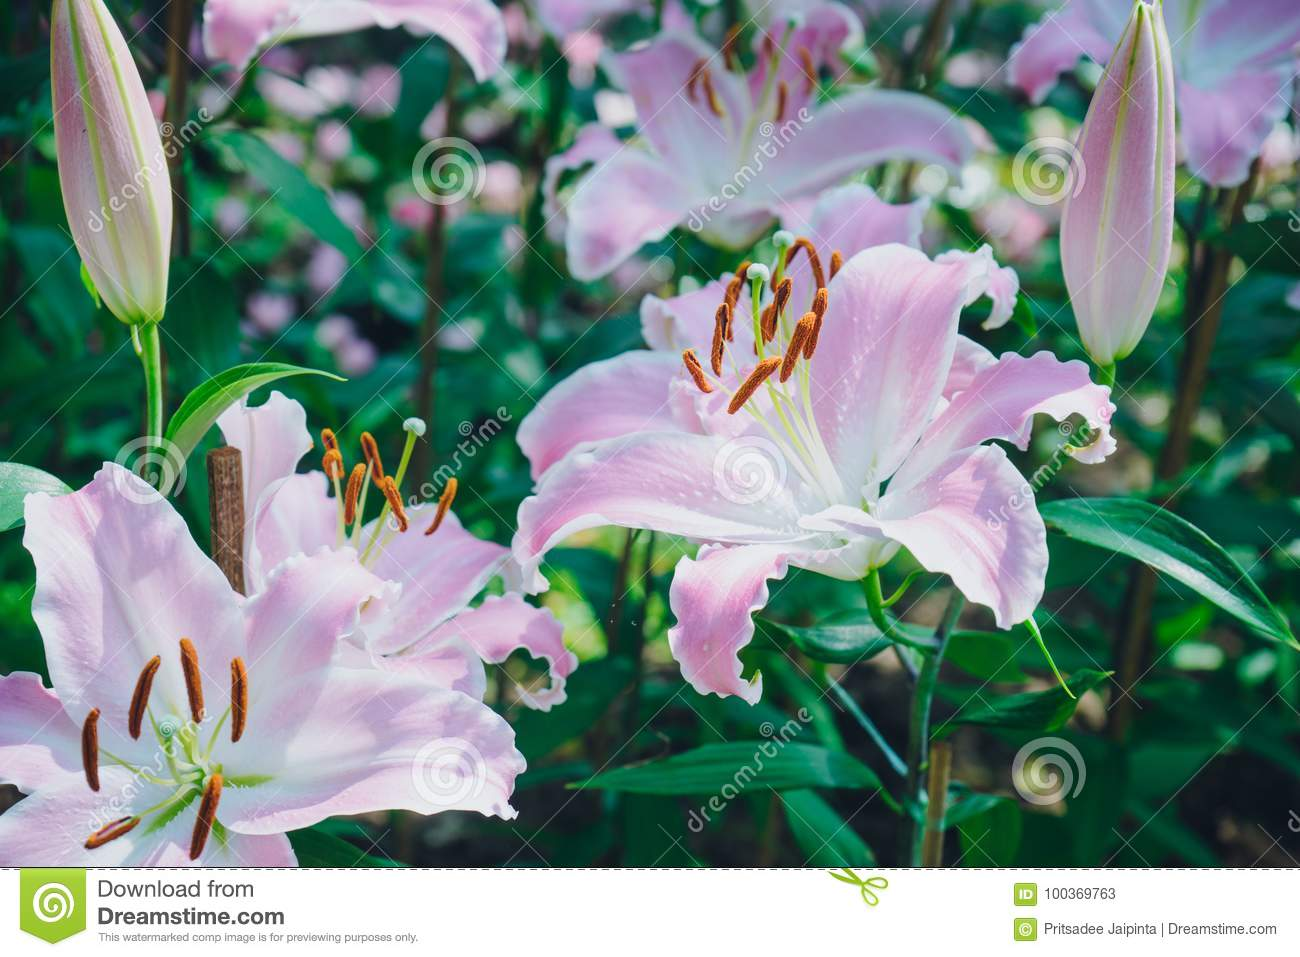 Lilies Flowers Bouquet In The Garden Stock Image Image Of Lily